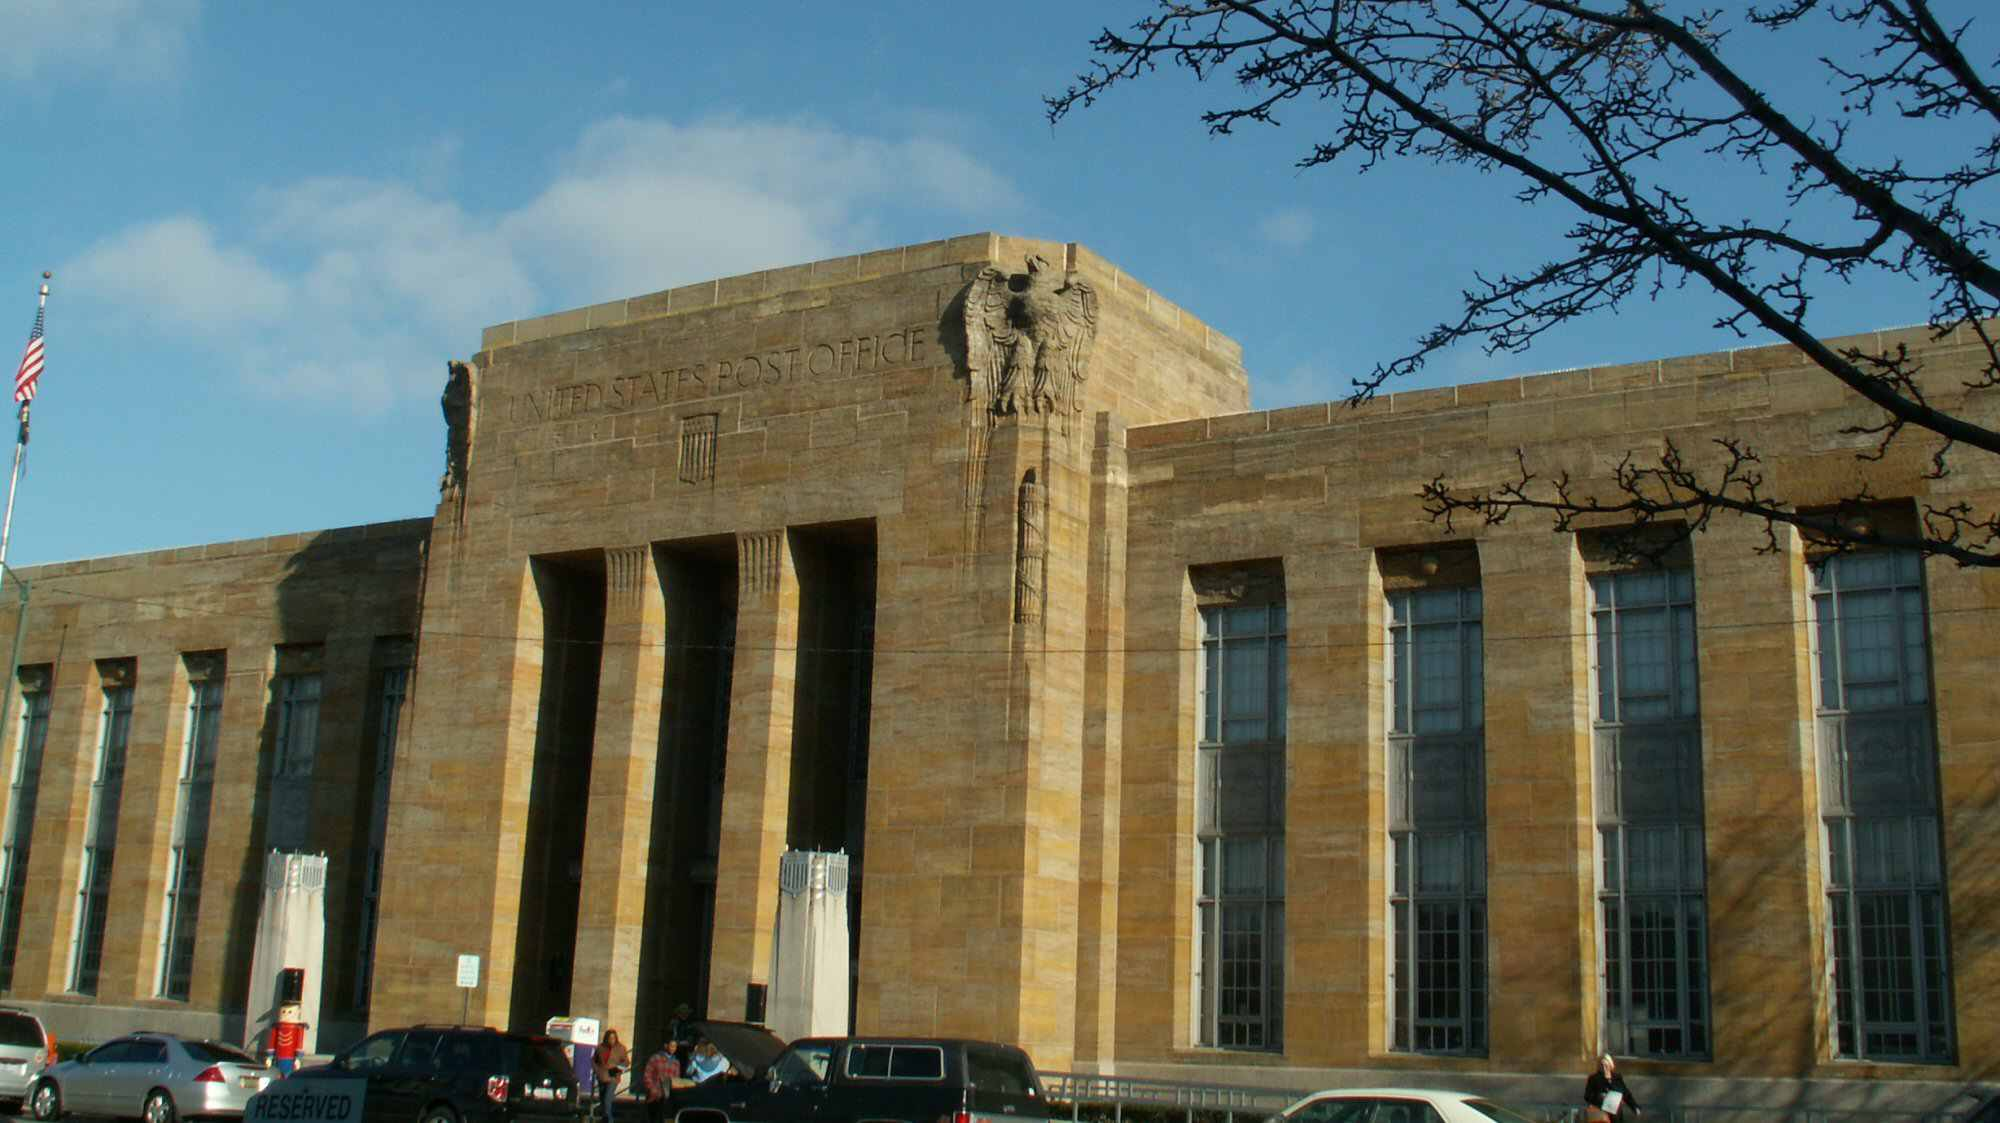 Photo of the Art Deco masonry post office in Springfield, Ohio shows huge eagles near the roof.